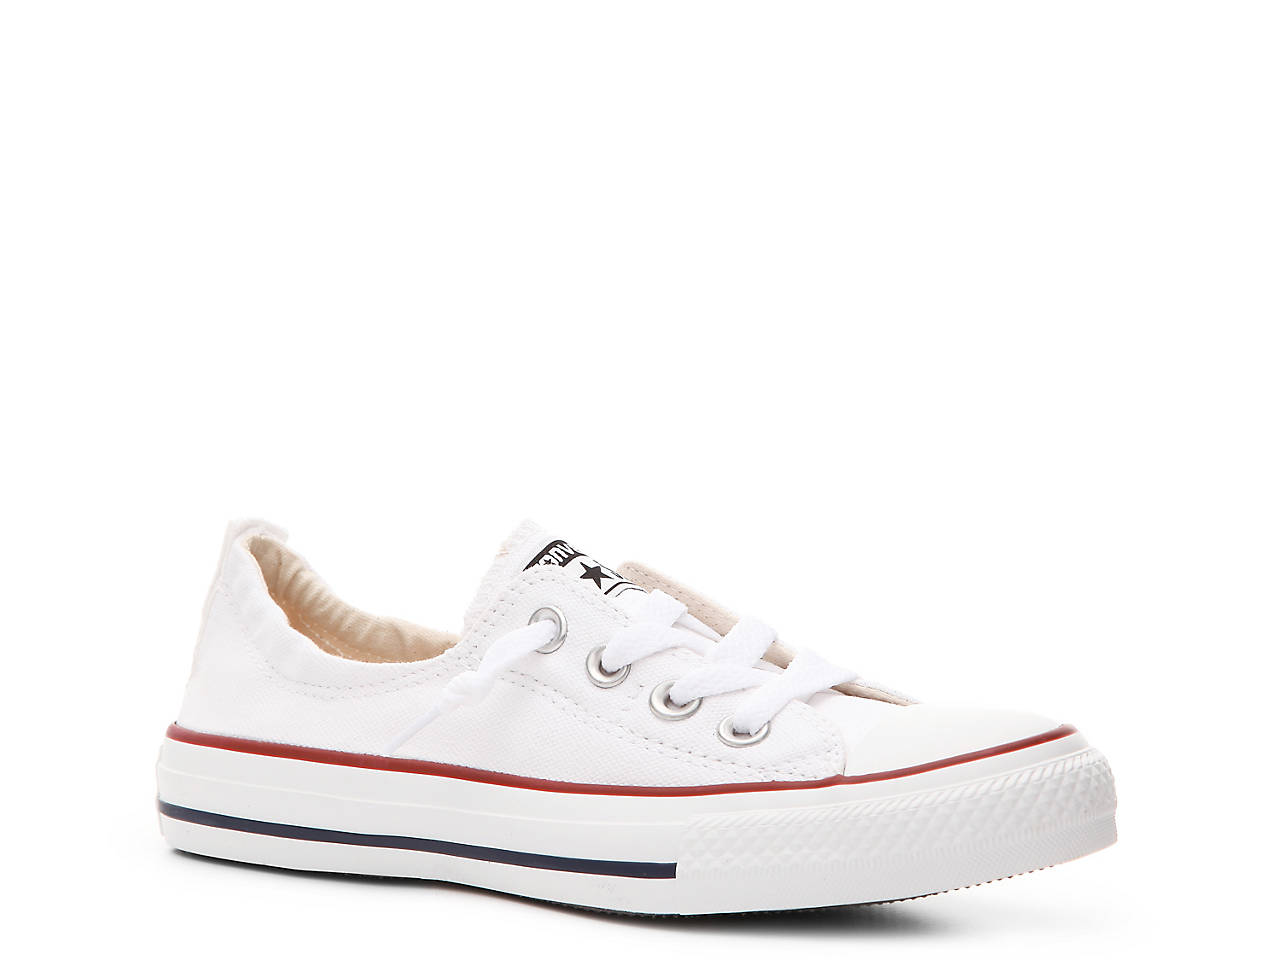 eb1cd1cd6b3ff4 Converse Chuck Taylor All Star Shoreline Slip-On Sneaker - Women s ...